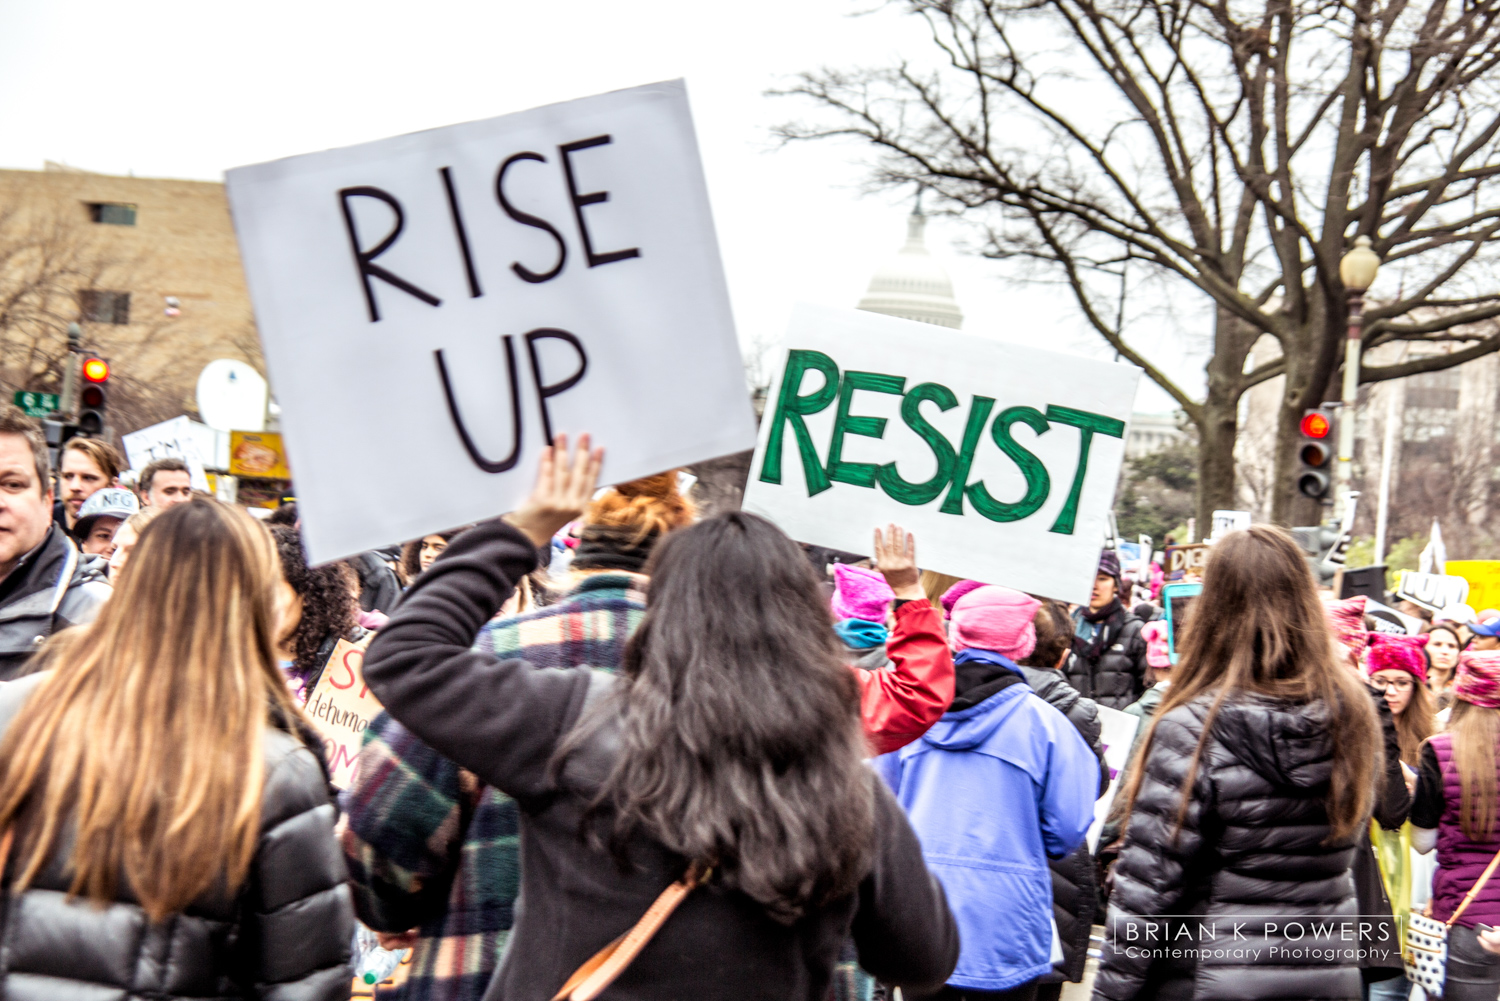 Womens-march-on-washington-2017-Brian-K-Powers-Photography-0096.jpg